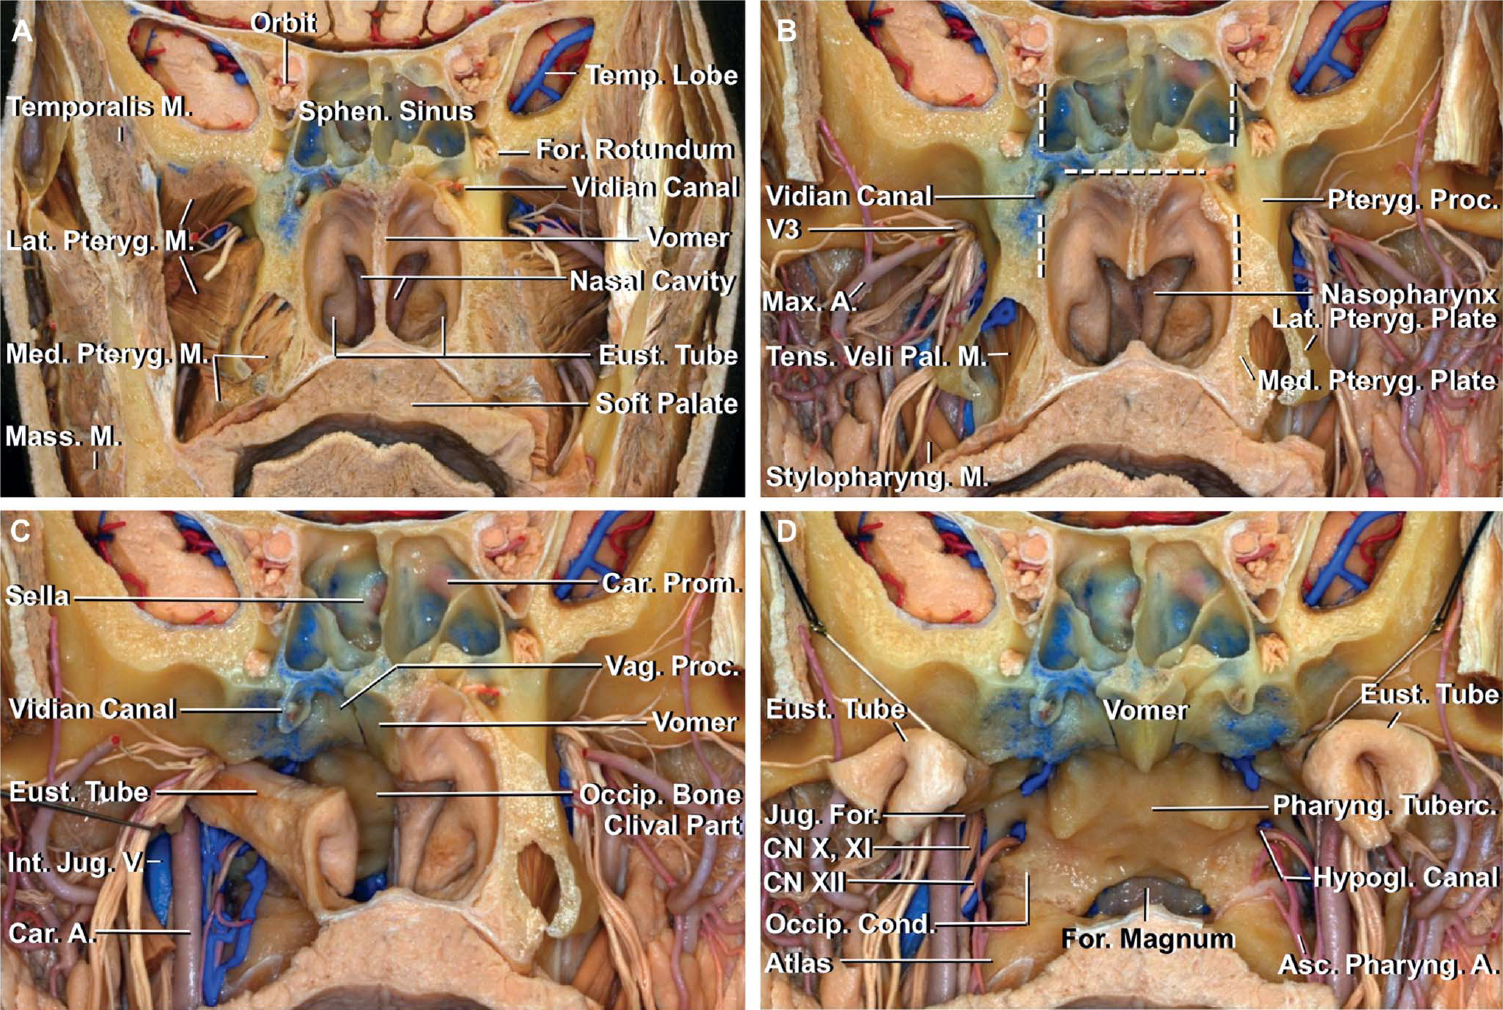 FIGURE 5. A-D, stepwise dissection of the nasopharynx and clivus. A, anterior view of a coronal section just in front of the pterygoid process. The sphenoid sinus, nasal cavity, and nasopharynx offer corridors to the clivus. The infratemporal fossa, containing the lateral and medial pterygoid muscles, branches of the maxillary artery, mandibular nerve, and pterygoid venous plexus, is located lateral to the nasal cavity and nasopharynx. B, the pterygoid muscles, lower part of the temporalis muscles, and vomer have been removed. The vidian canal is located at the lower lateral corner of the sphenoid sinus floor, where a horizontal line along the sinus floor meets a vertical line along the lateral wall of the sphenoid sinus and the medial pterygoid plate. C, the right pterygoid process, tensor, and levator veli palatini muscles and the nasopharyngeal structures, except the right eustachian tube, have been removed while preserving the vidian canal. The eustachian tube extends from the middle ear, passes along the posterior edge of the medial pterygoid plate, and opens into the nasopharynx. The internal carotid artery and internal jugular vein are positioned behind the foramen ovale and branches of the mandibular nerve. D, the pterygoid processes have been removed on both sides, and the eustachian tubes have been retracted laterally to provide an anterior view of the clivus and the adjacent area. The anterior edge of the exocranial orifice of the jugular foramina is located at almost the same level as the anterior edge of the pharyngeal tubercle. The soft palate sits at the level of the foramen magnum.